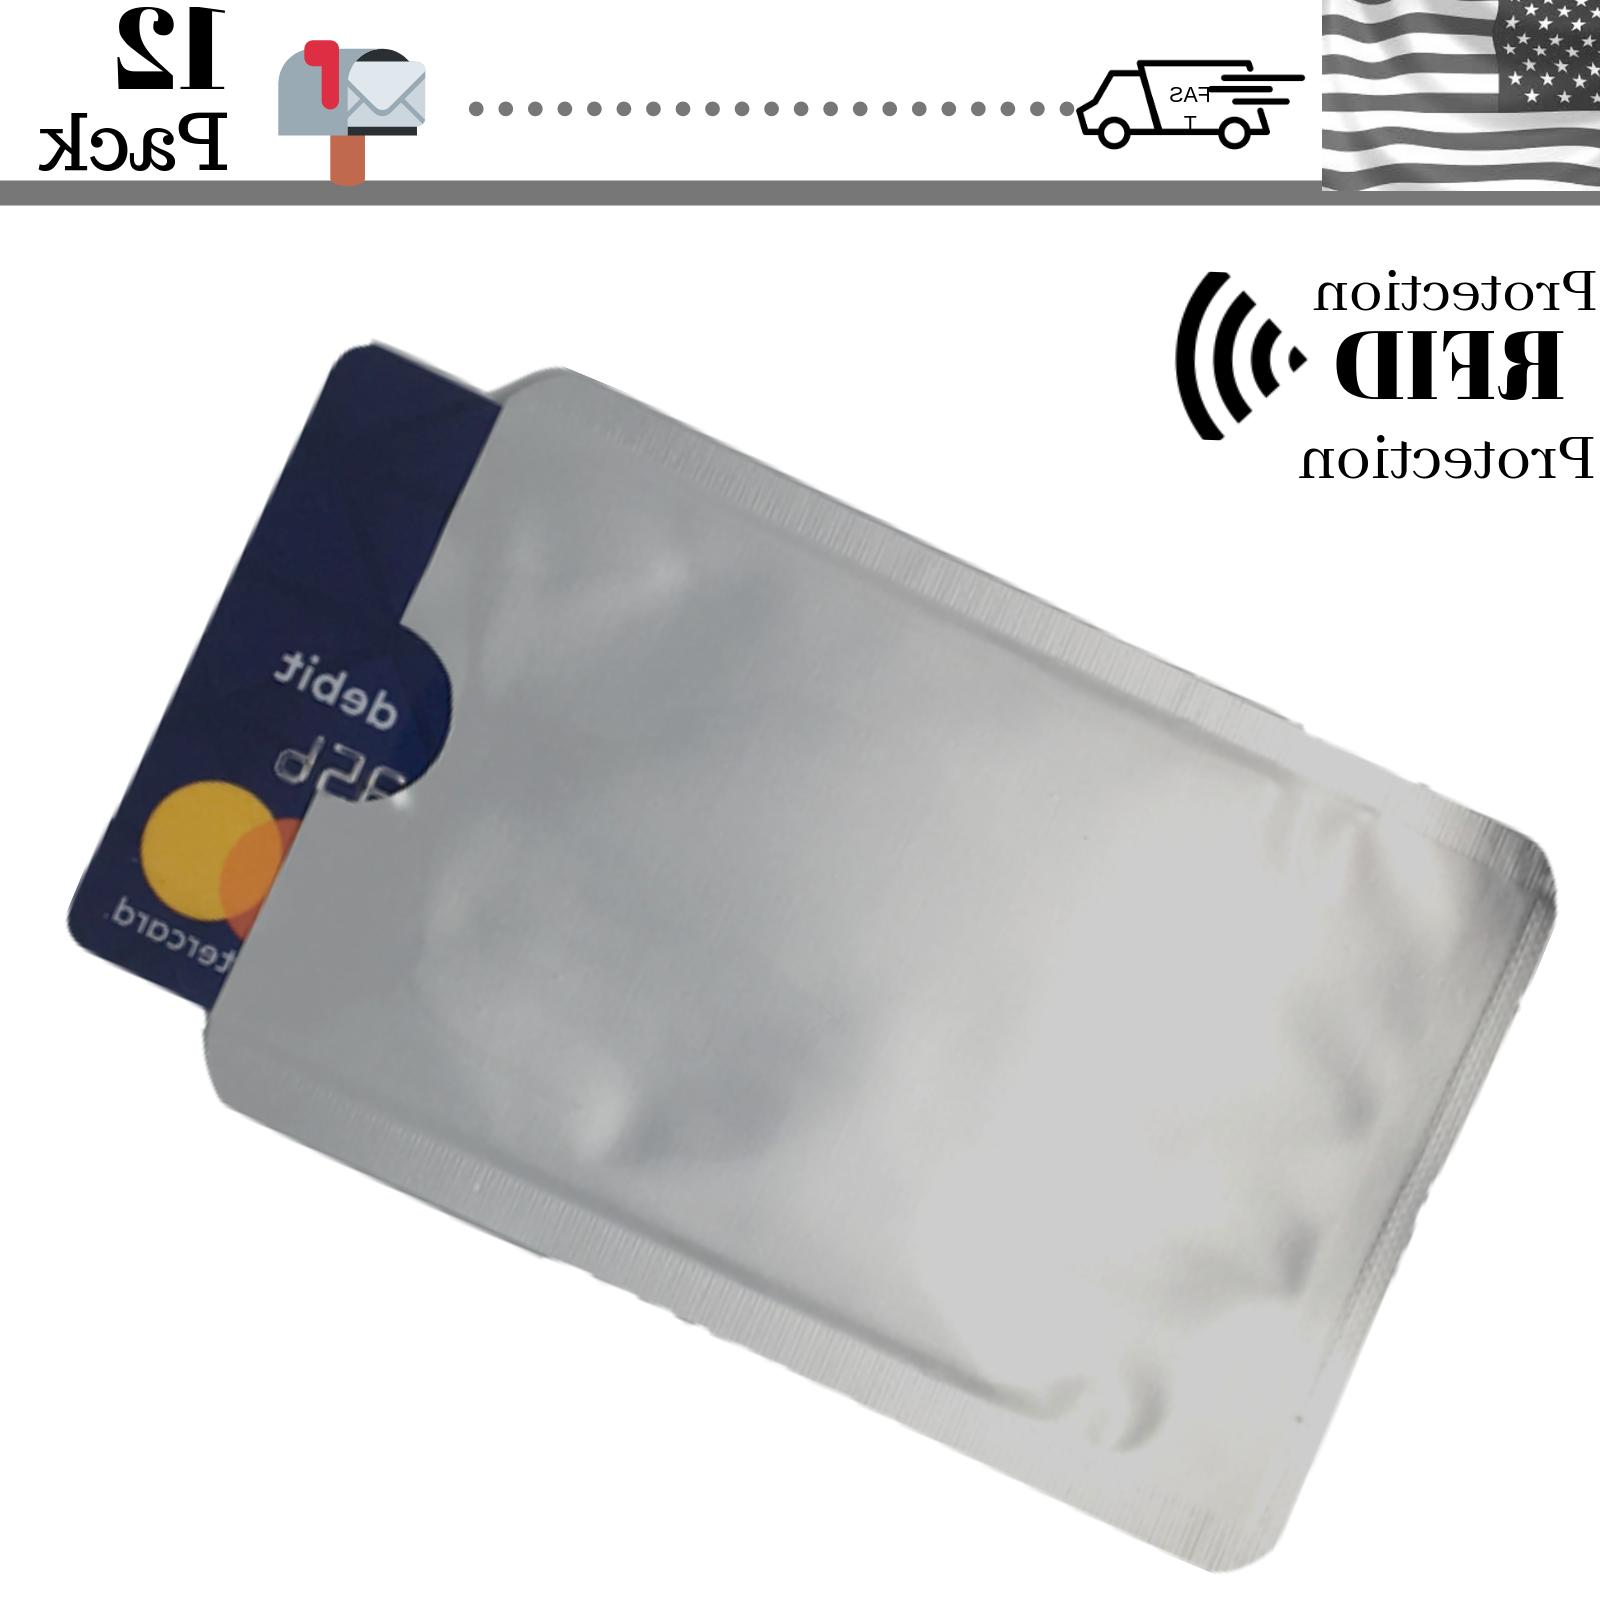 12 Credit Card Blocking Sleeve